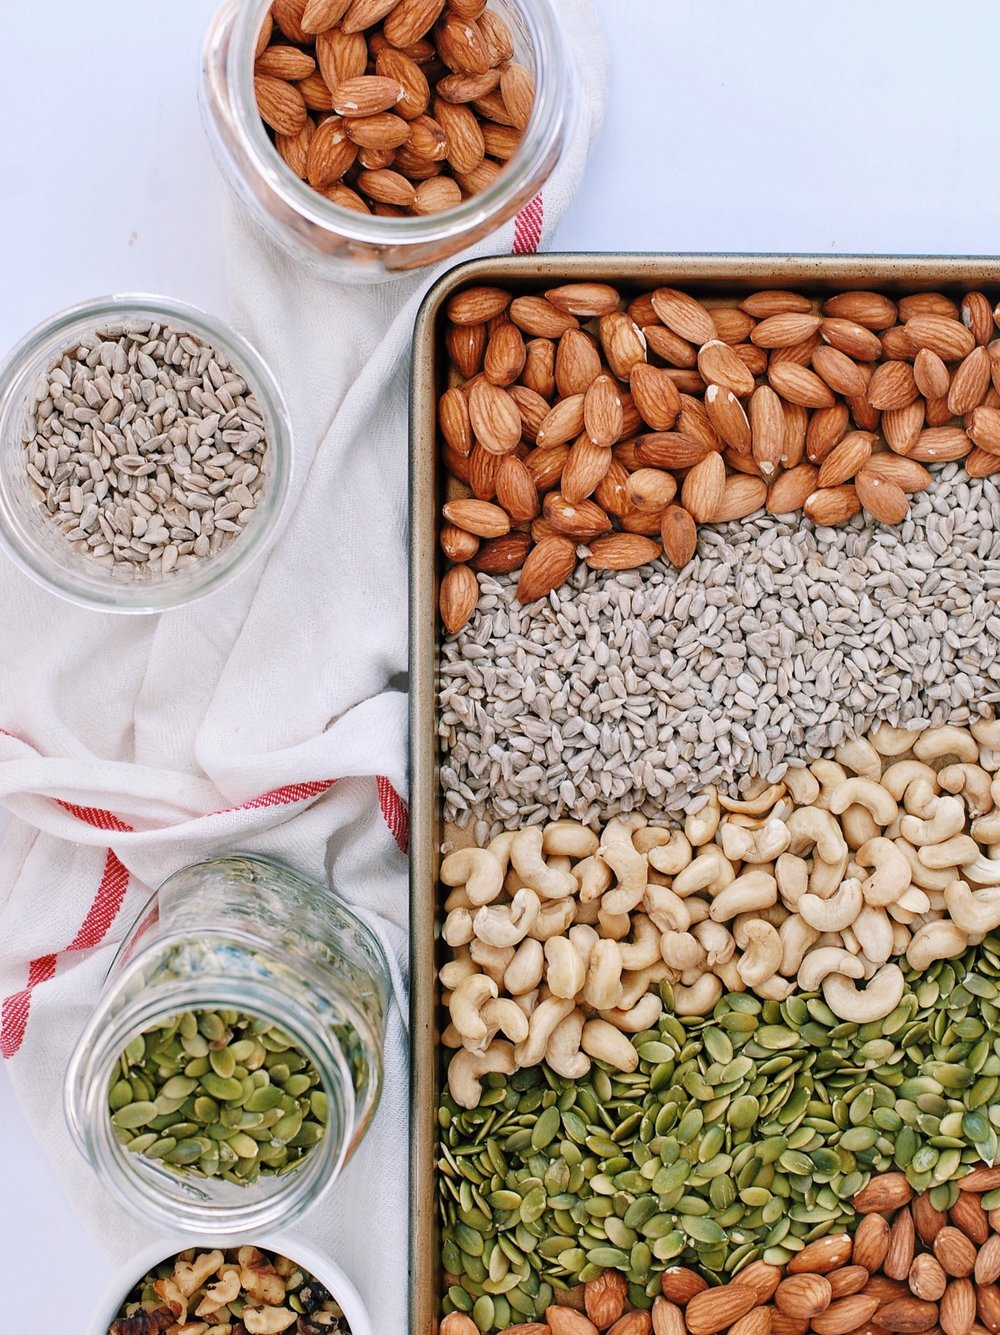 Your Guide to Soaking/Activating Nuts, Seeds, and Grains  - the how and why behind soaking nuts and seeds - Soaking your nuts and seeds have so many benefits for your health! Dehydrating them also make the most delicious crispy nuts! - Foody First - #paleo #vegan #nutsandseeds #whole30 #whole30snacks #wellness #holistichealth #keto #healthyfats